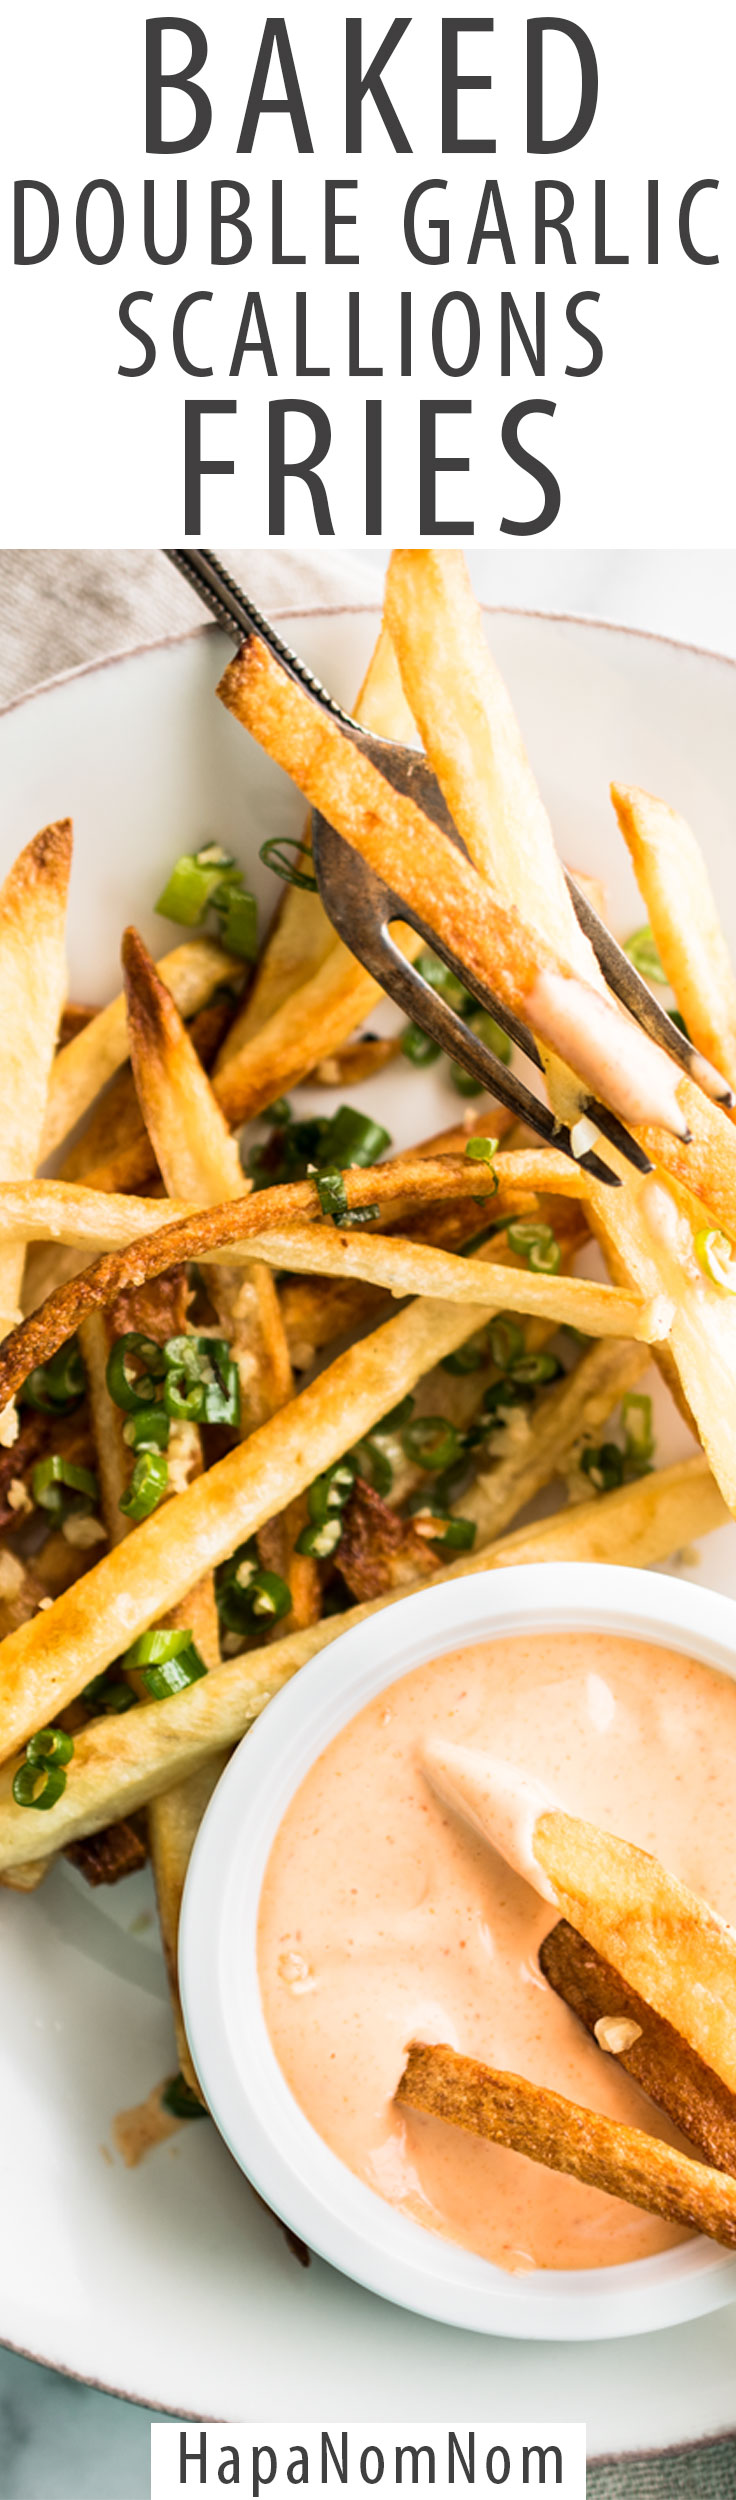 Crispy Double Garlic and Scallion Baked Fries with Sriracha Mayo!